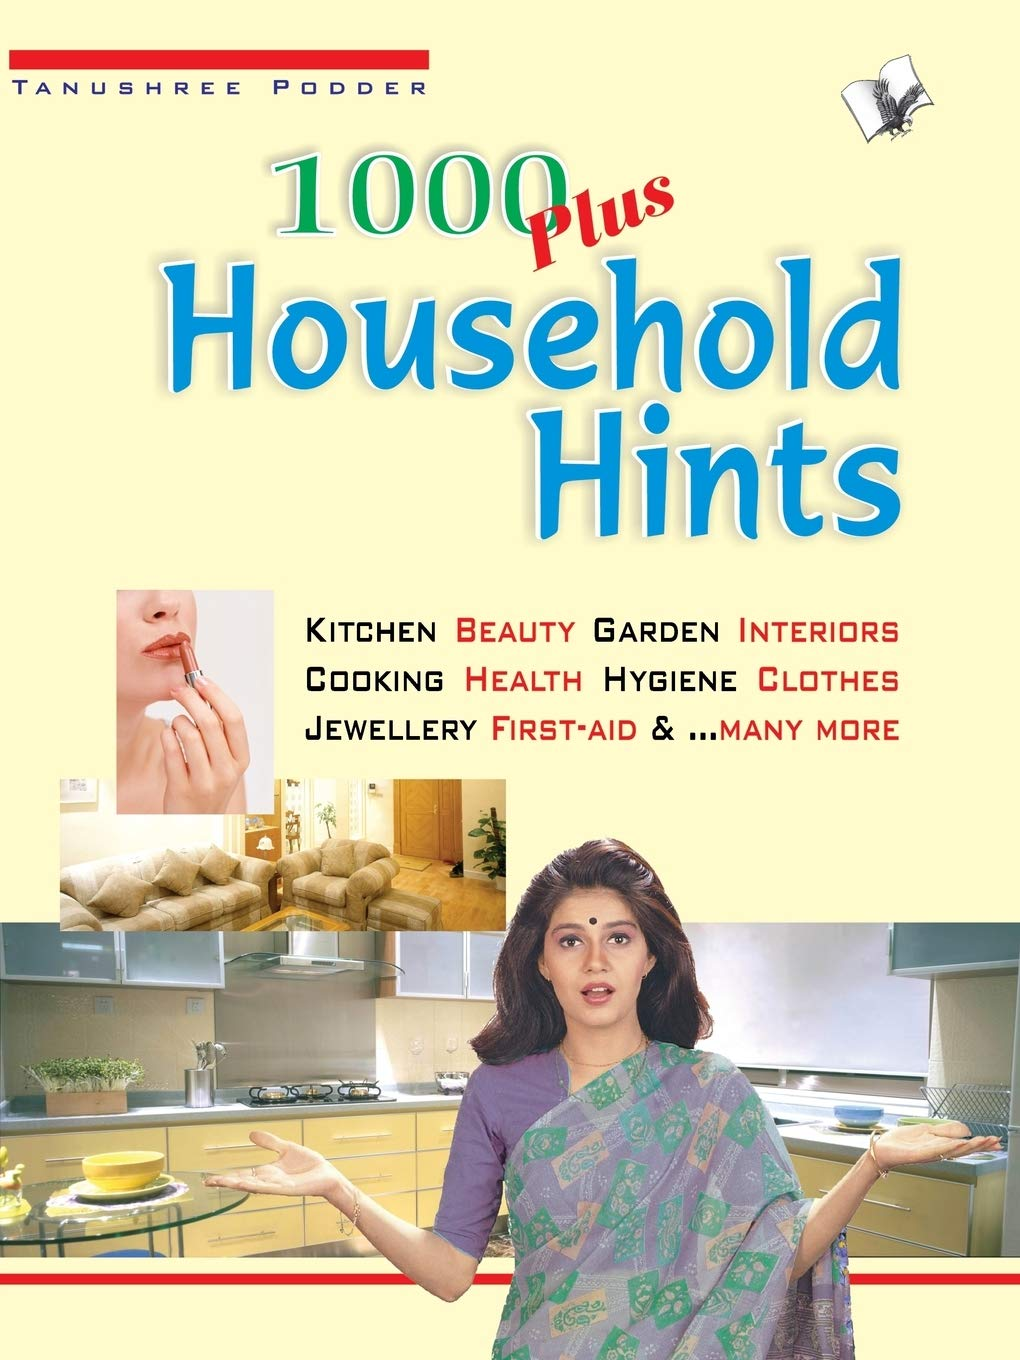 1000 PLUS HOUSEHOLD HINTS: KITCHEN BEAUTY GARDEN INTERIORS COOKING HEALTH HYGINE CLOTHES JEWELLARY FIRST AID AND MANY MORE